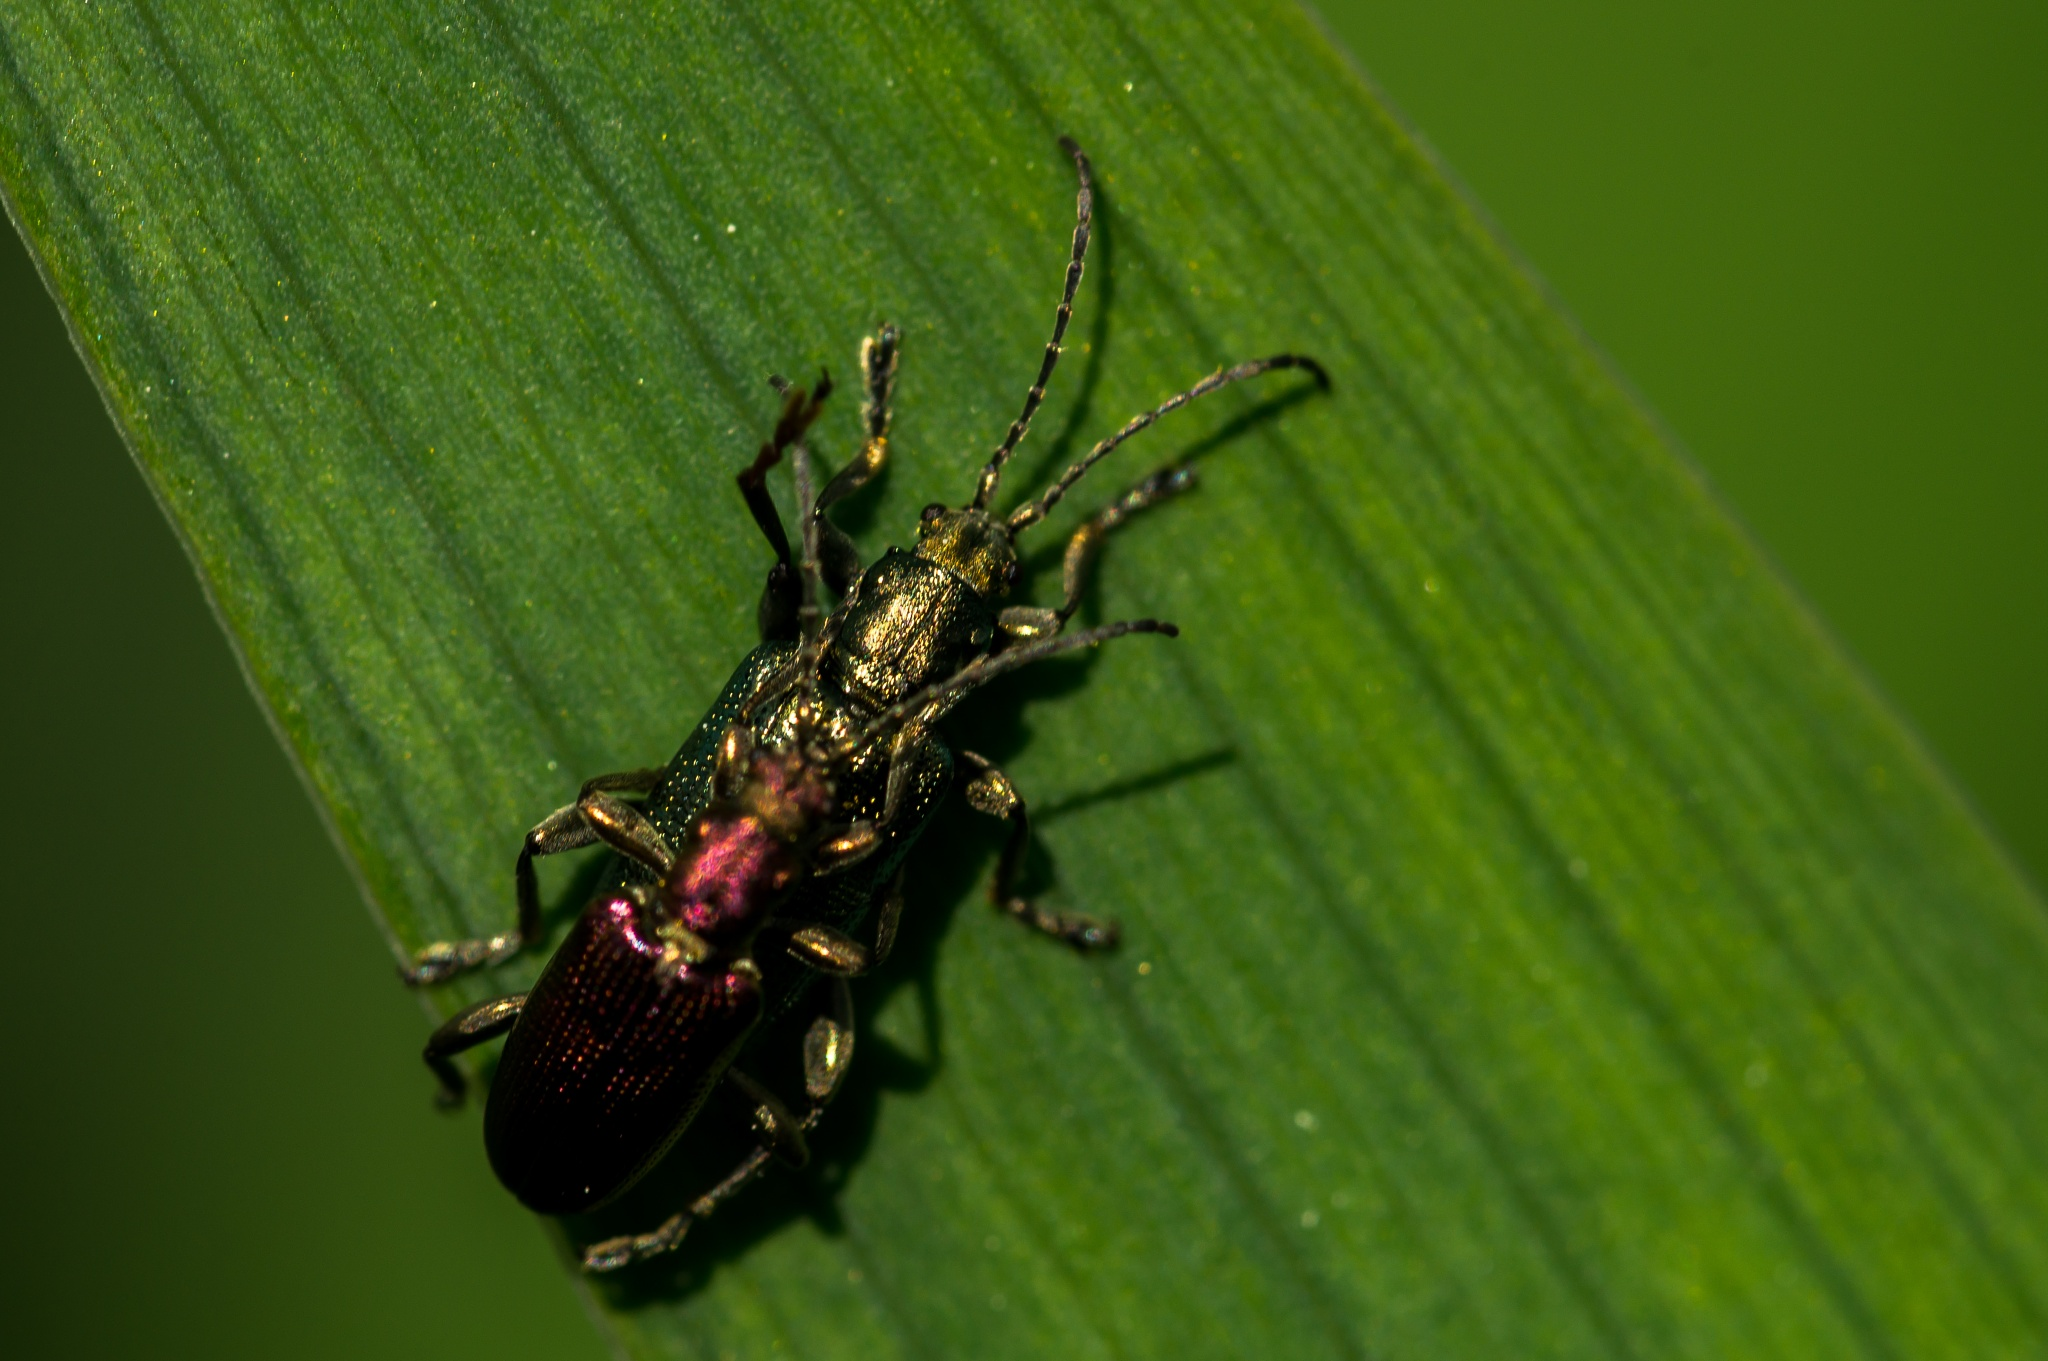 Bugs on the leaf by Hintermann